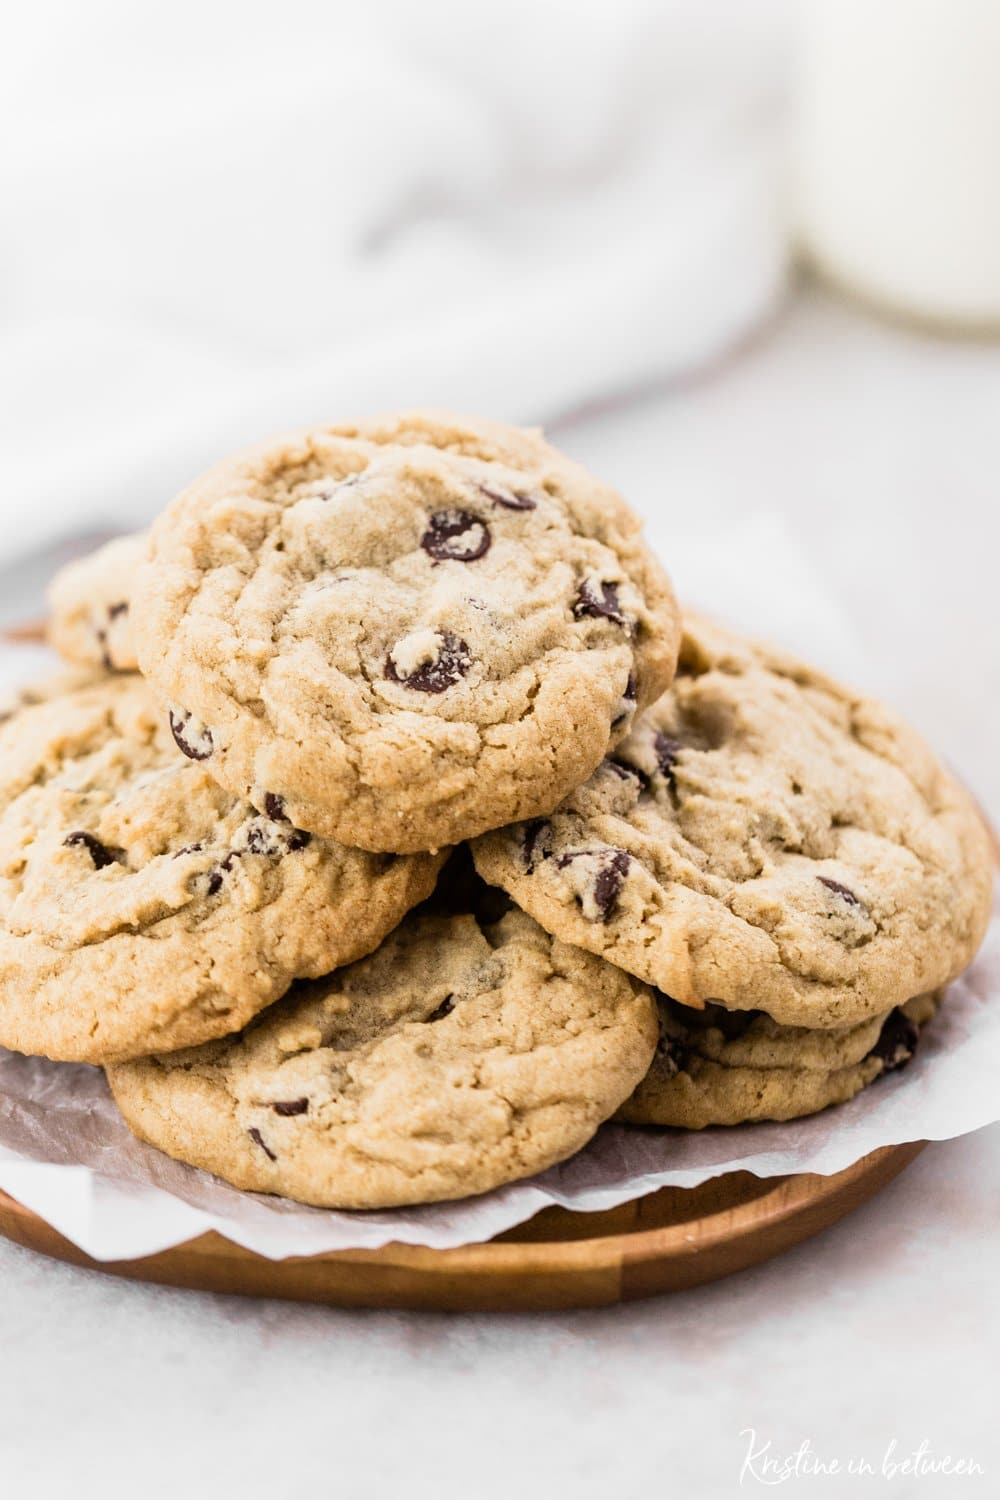 The best thick and chewy homestyle chocolate chip cookies.